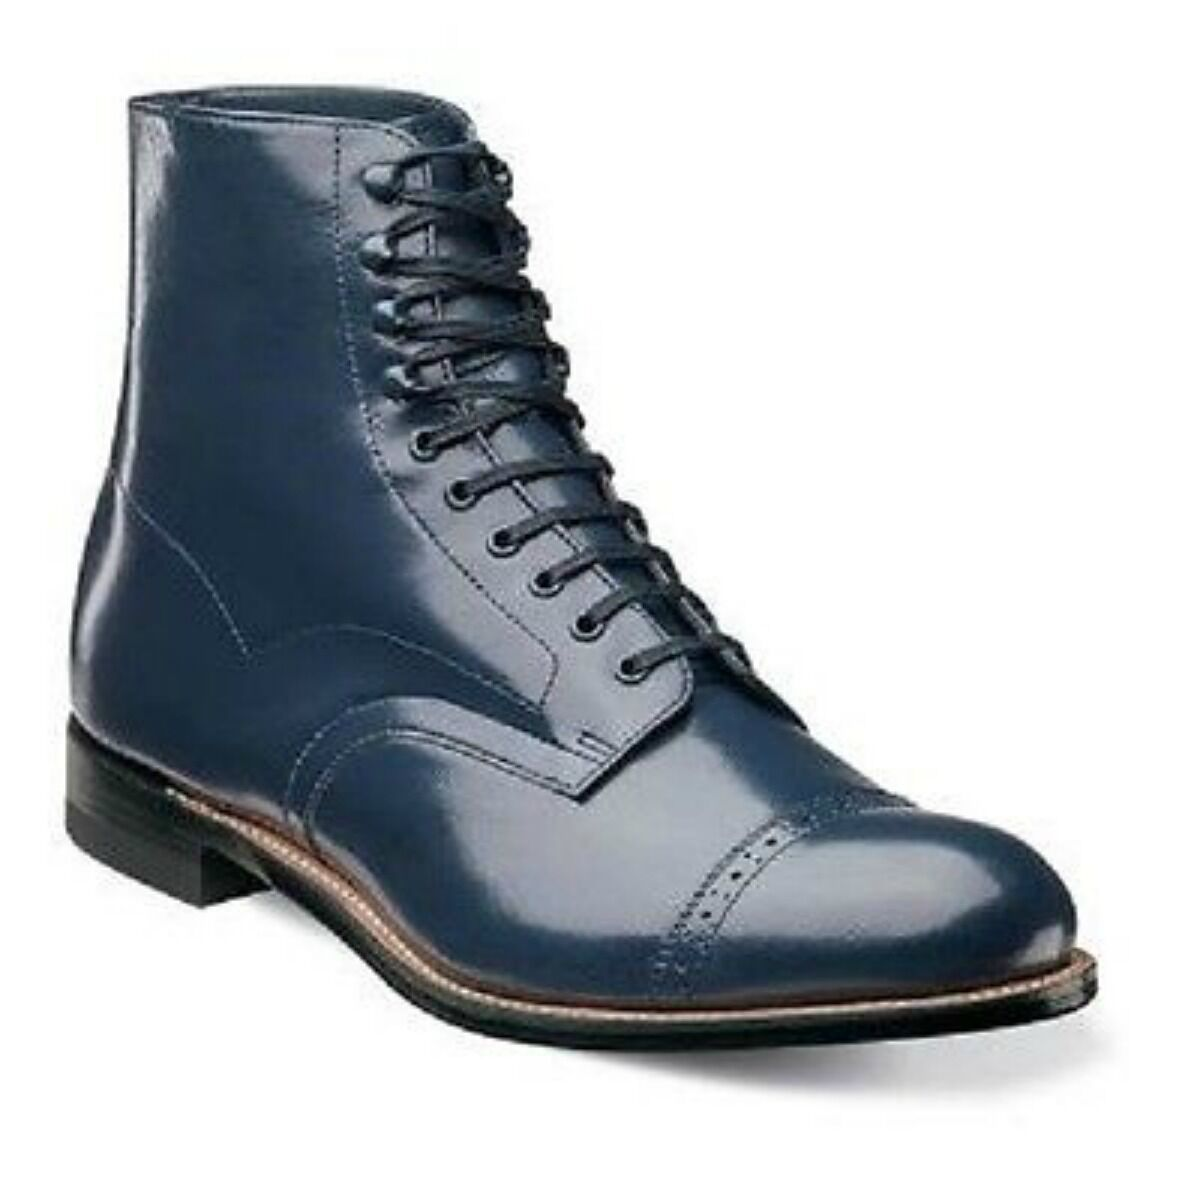 New Up Stacy Adams Uomo Madison Cap Toe Lace Up New Ankle Boots Navy Leather 00015-410 b93db3